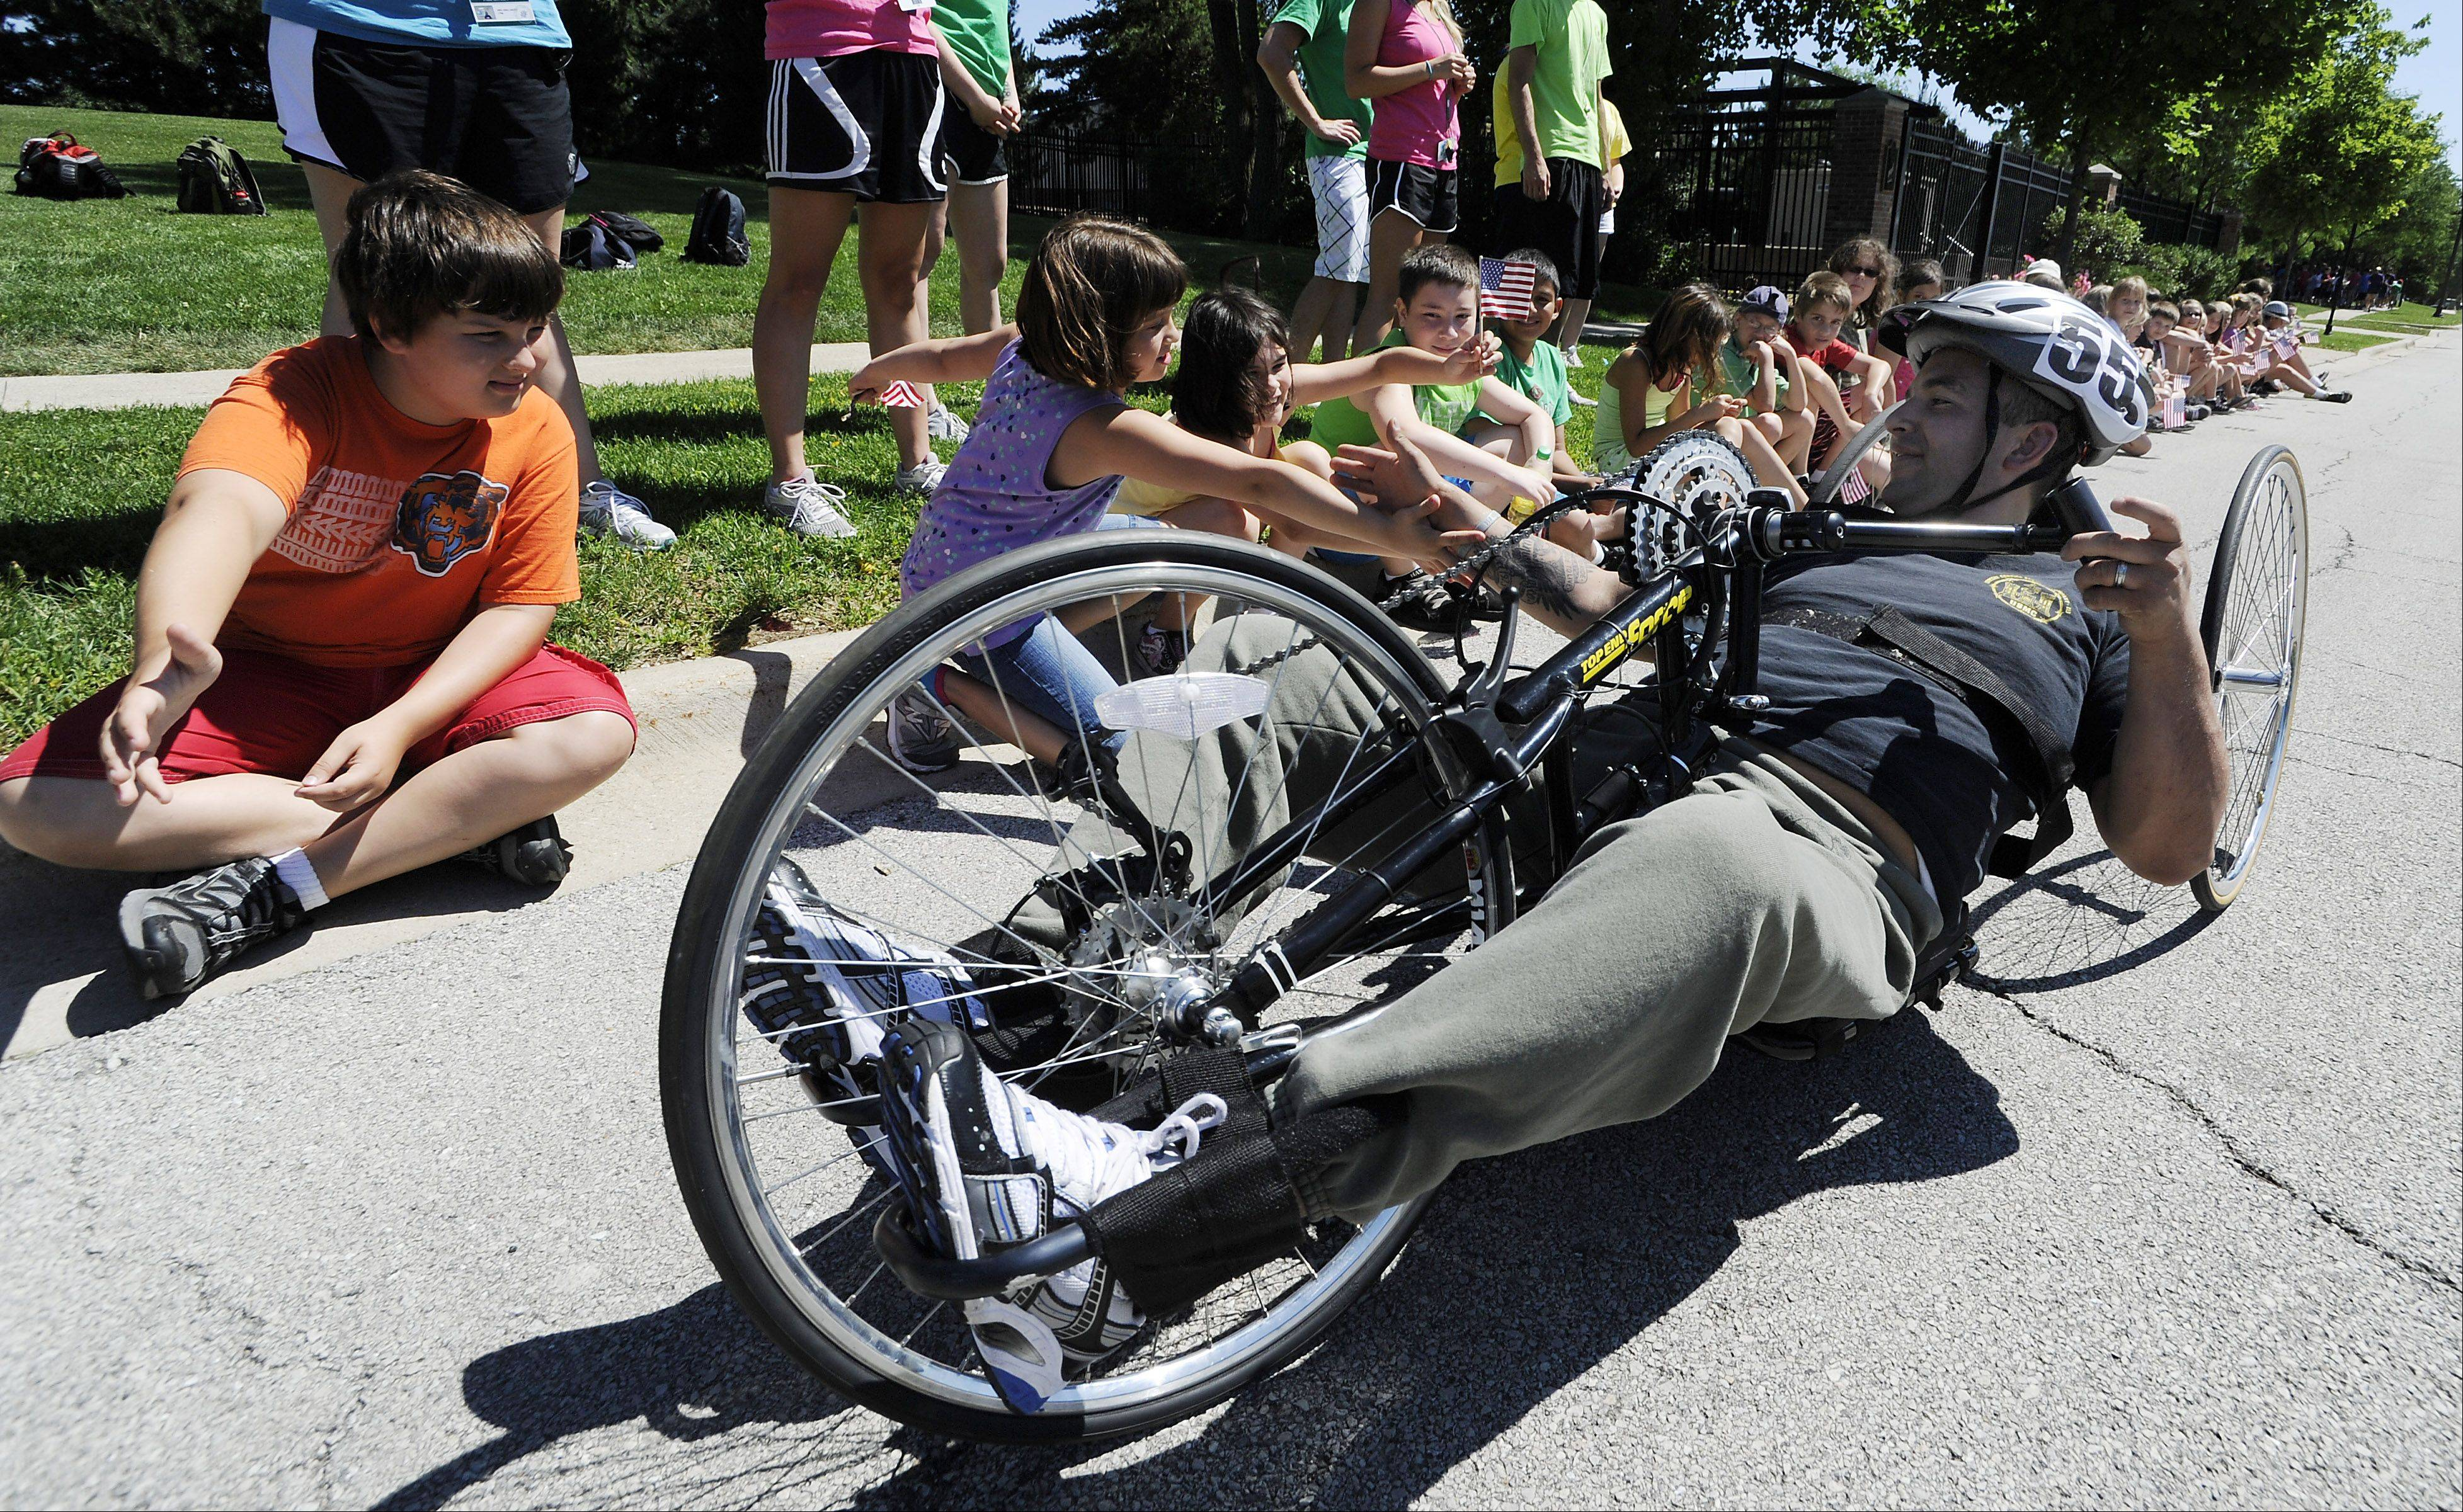 Alberto Velasco, 31, of Schaumburg, one of the athletes participating in the handcycle race in the upcoming Tour of Elk Grove, gets a start in the mini-race with high-fives from the kids at the Elk Grove Village summer camp Voyager on Tuesday.